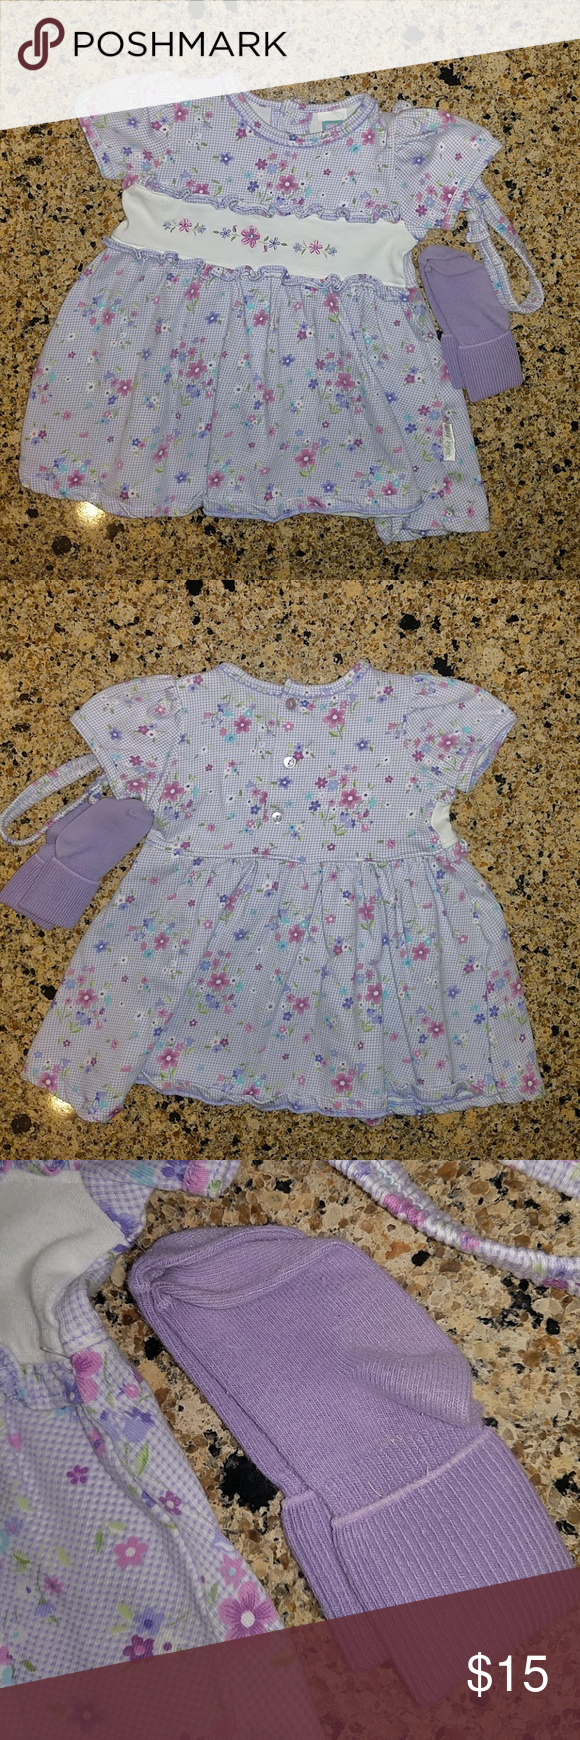 Little Me Baby Girl Dress Nwot Size 18 Months Little Me Baby Girl Spring Summer Dress With Matching Headband Baby Girl Dress Matching Headband Little My [ 1740 x 580 Pixel ]